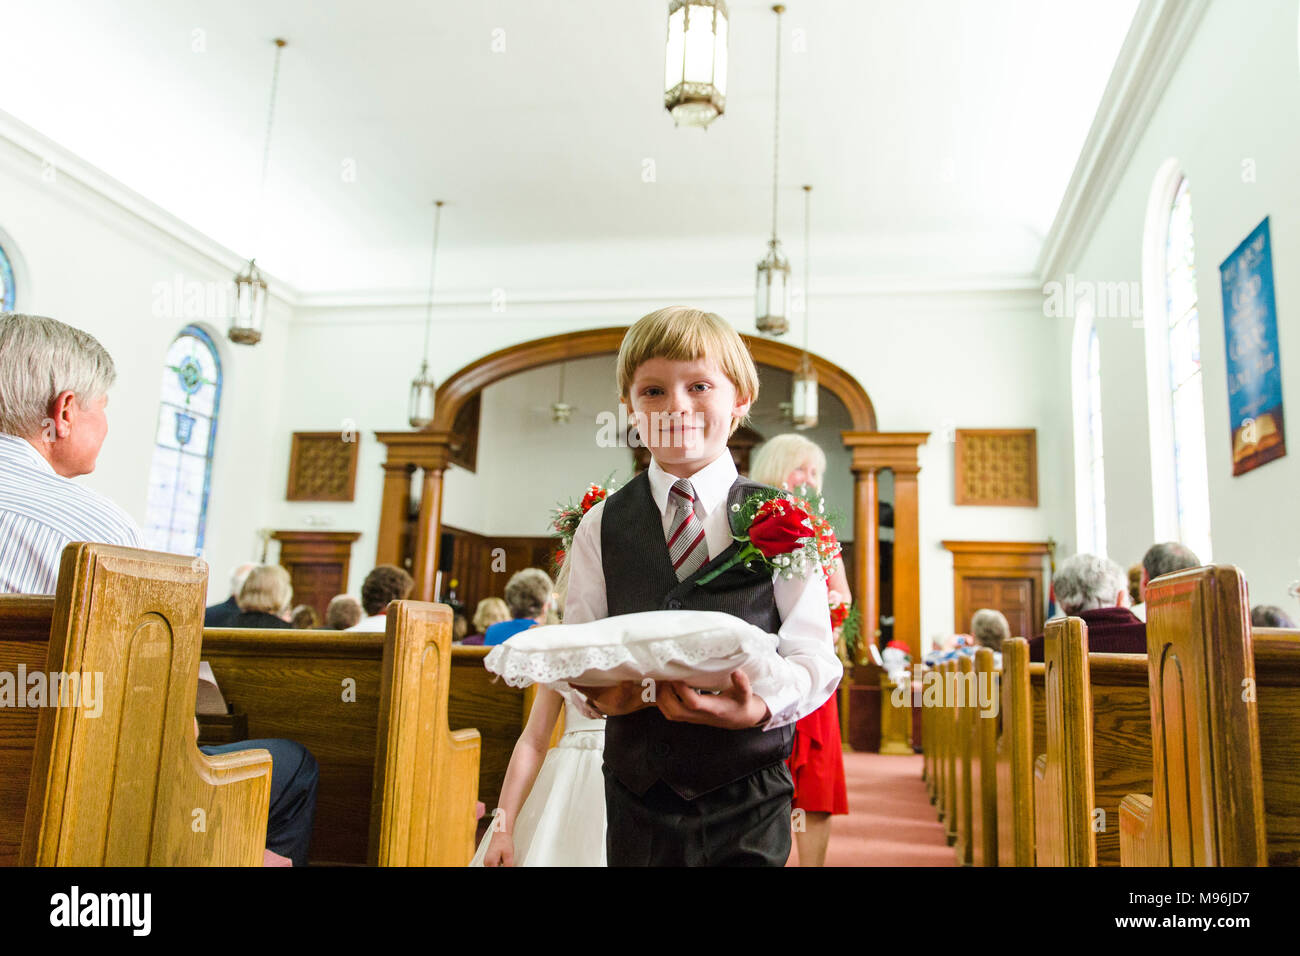 Child ring bearer walking through church - Stock Image